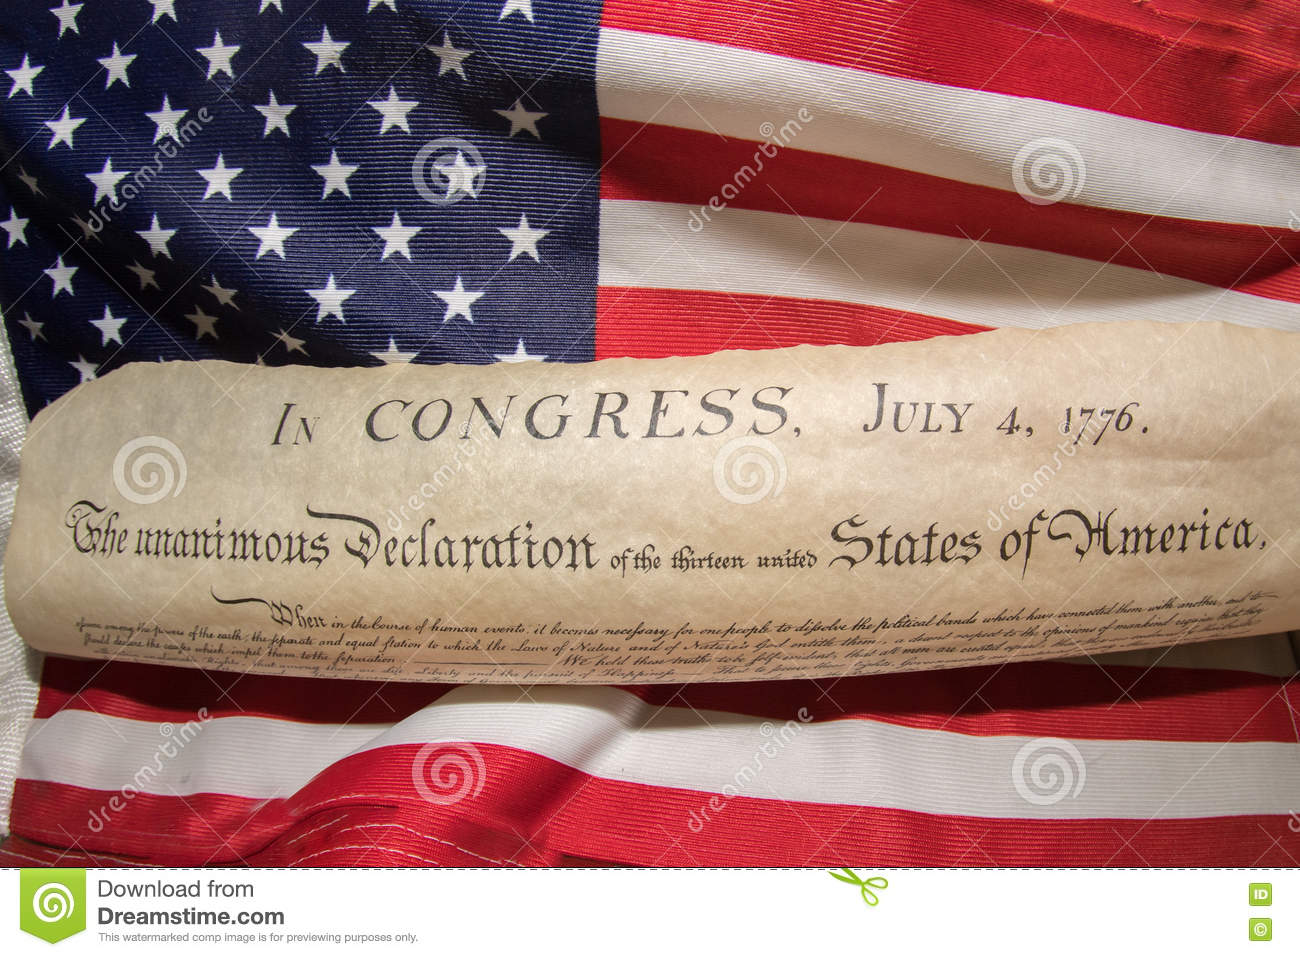 Declaration of independence 4th july 1776 on usa flag